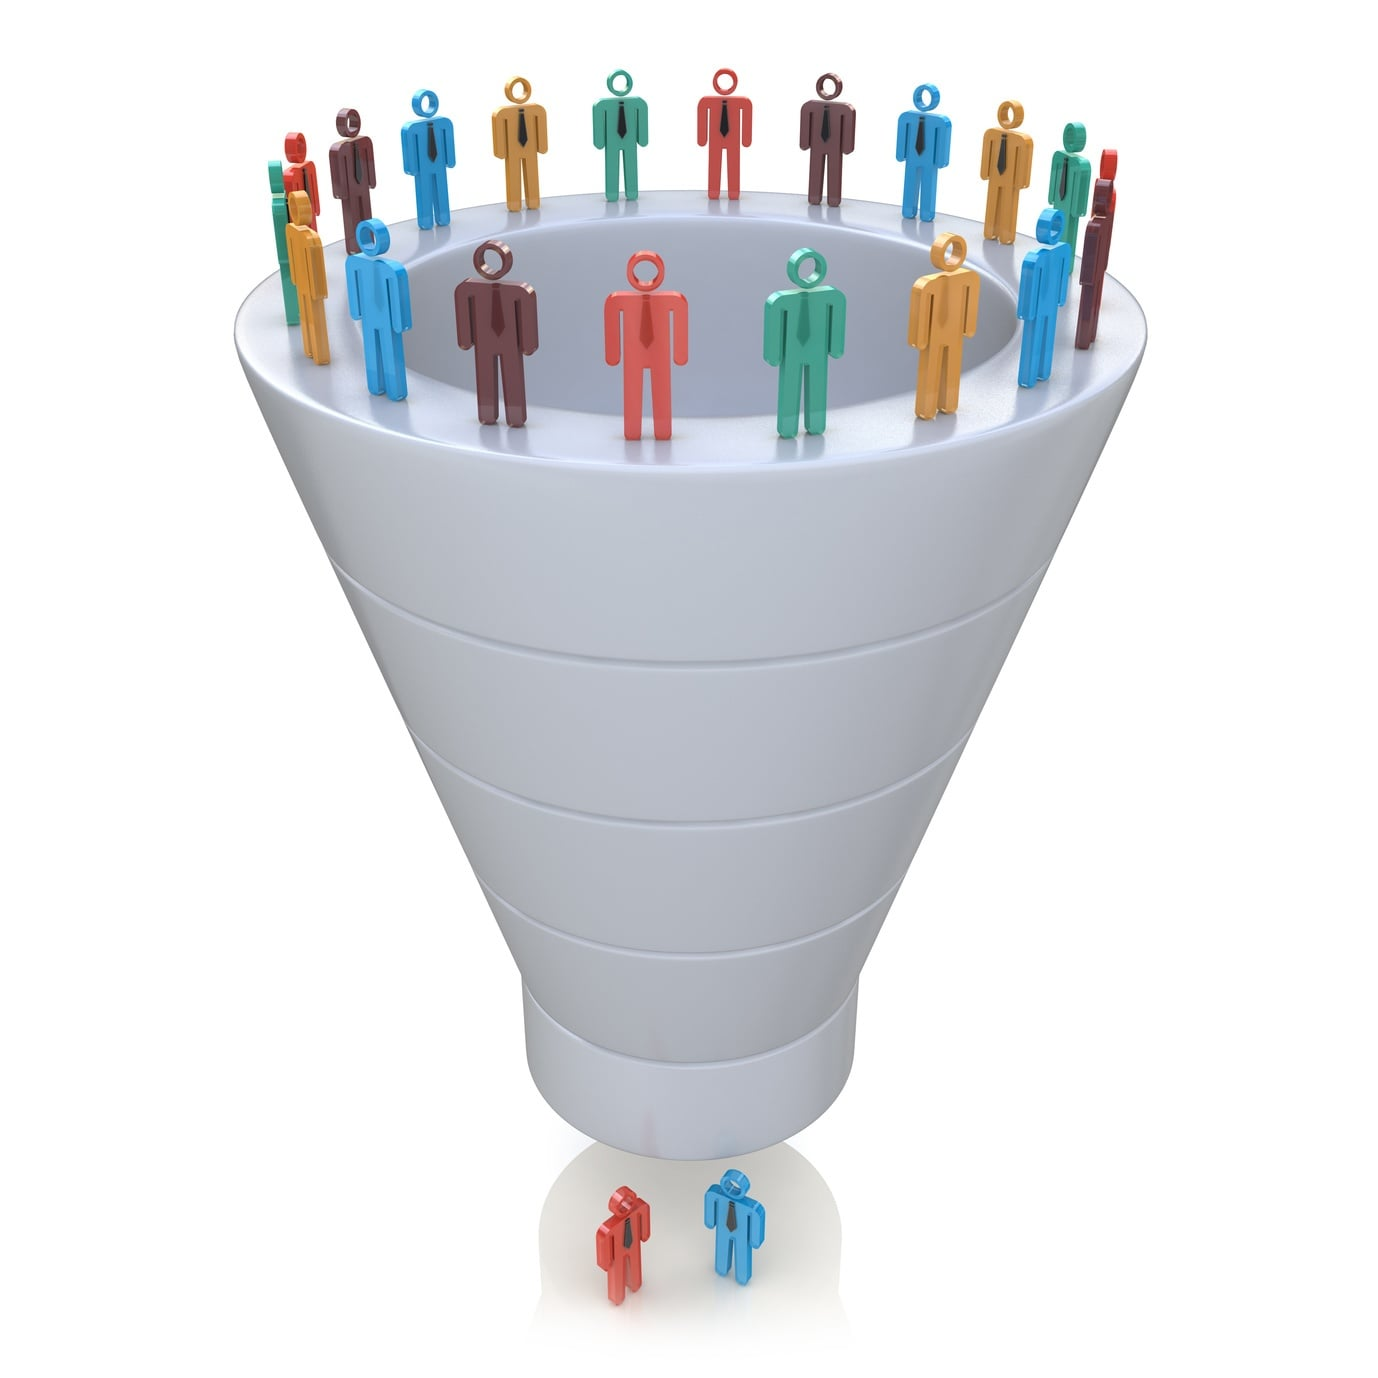 Lead nurture your prospects down the sales funnel